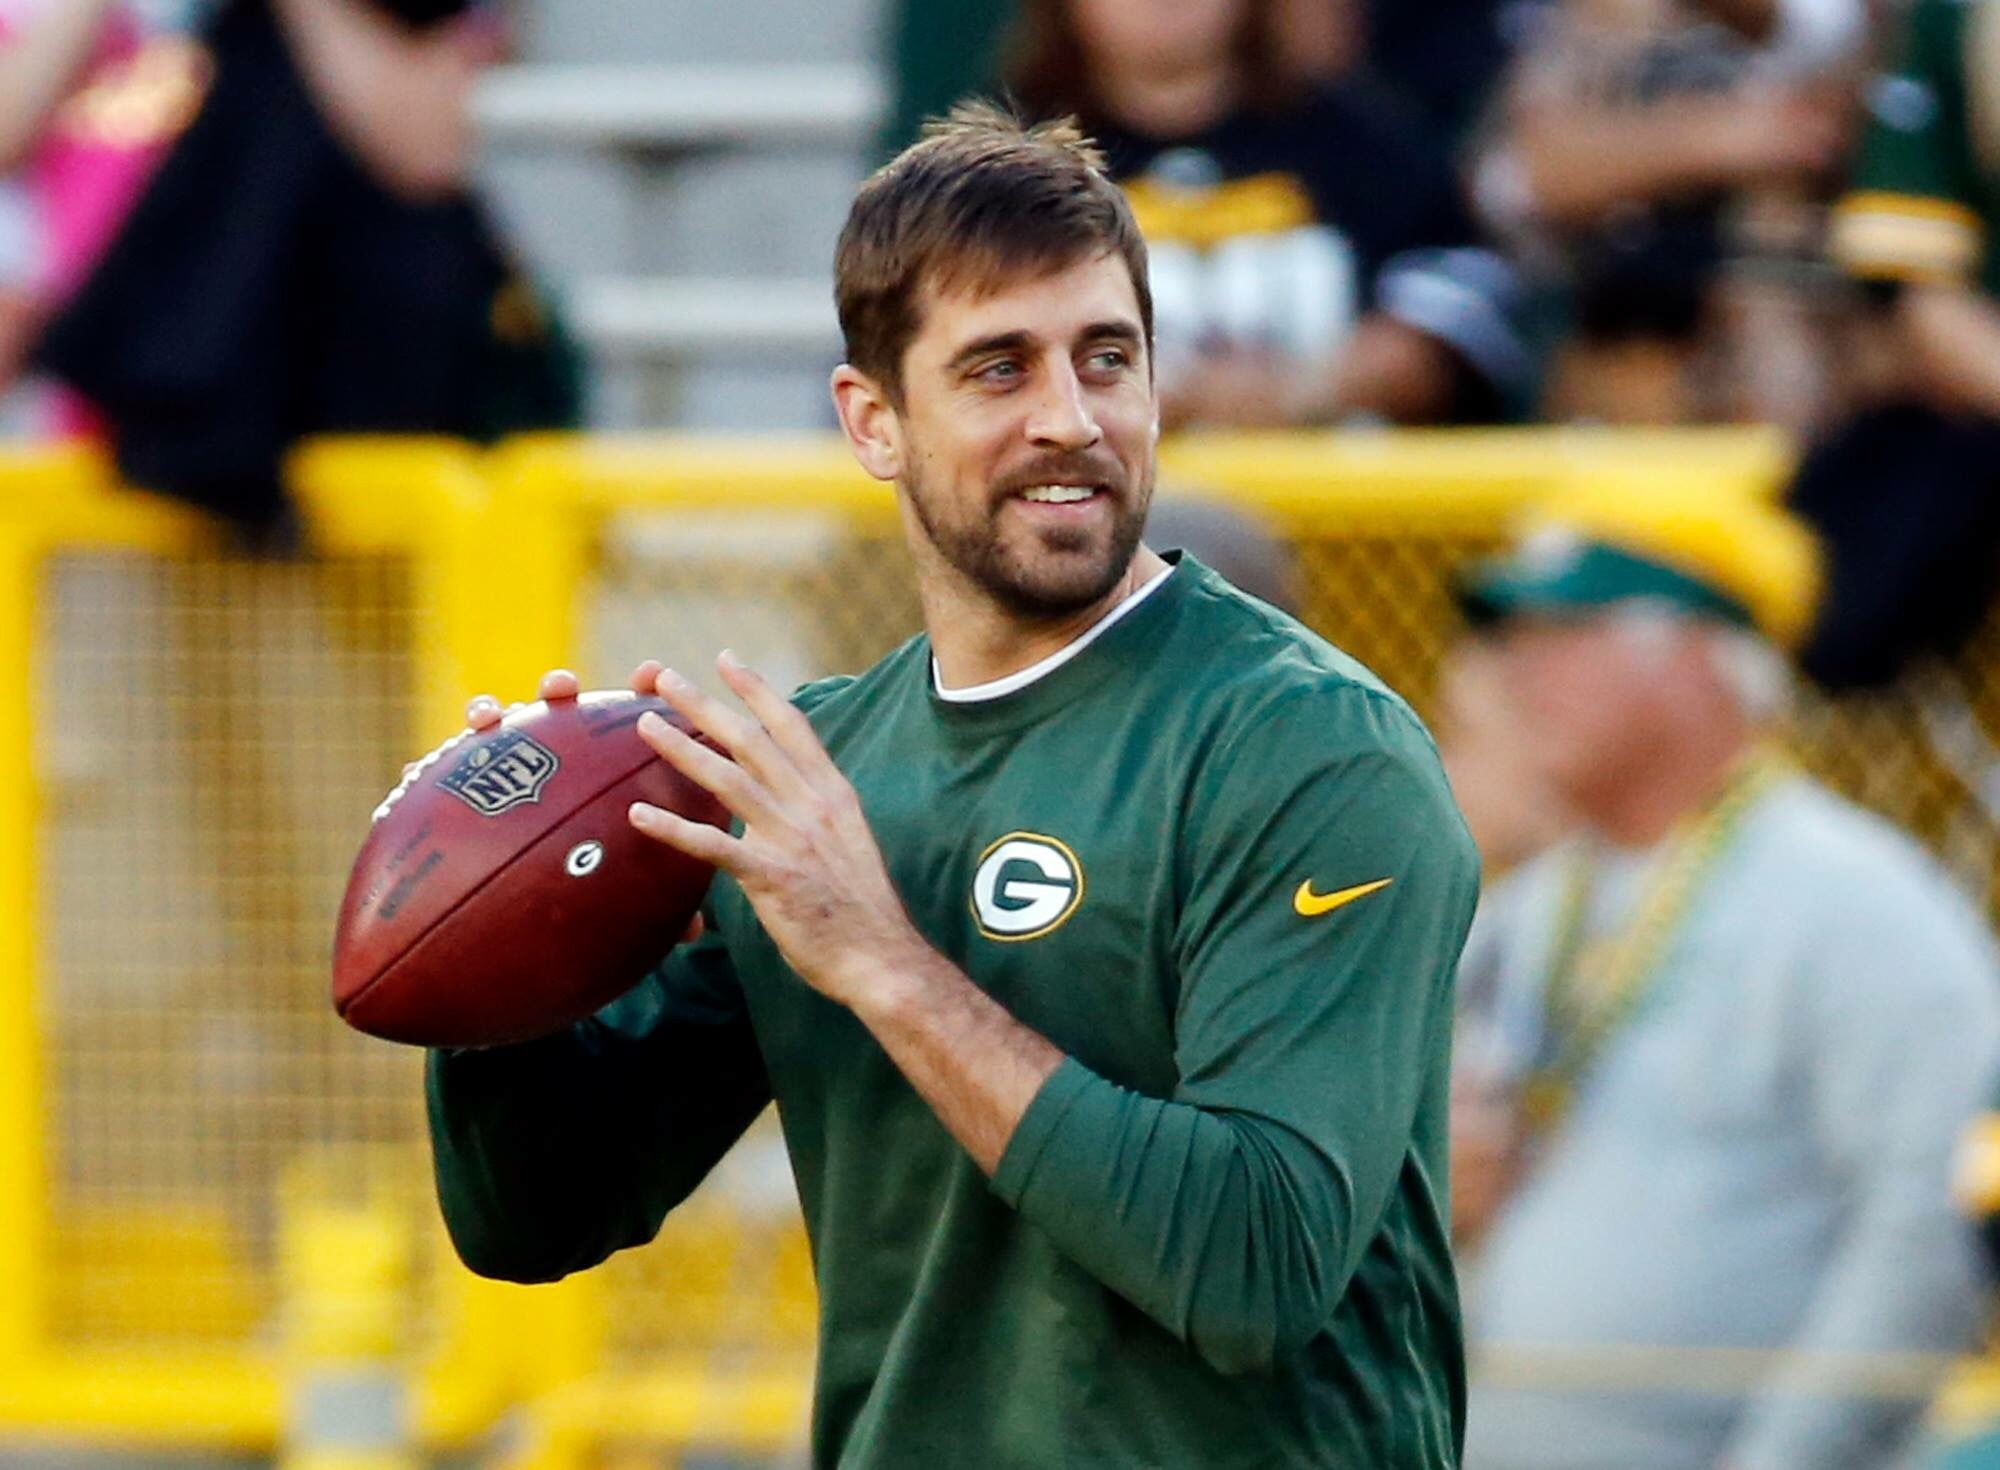 Aaron Rodgers Pre Game Warm Up Super Bowl Wins Rodgers Packers Football